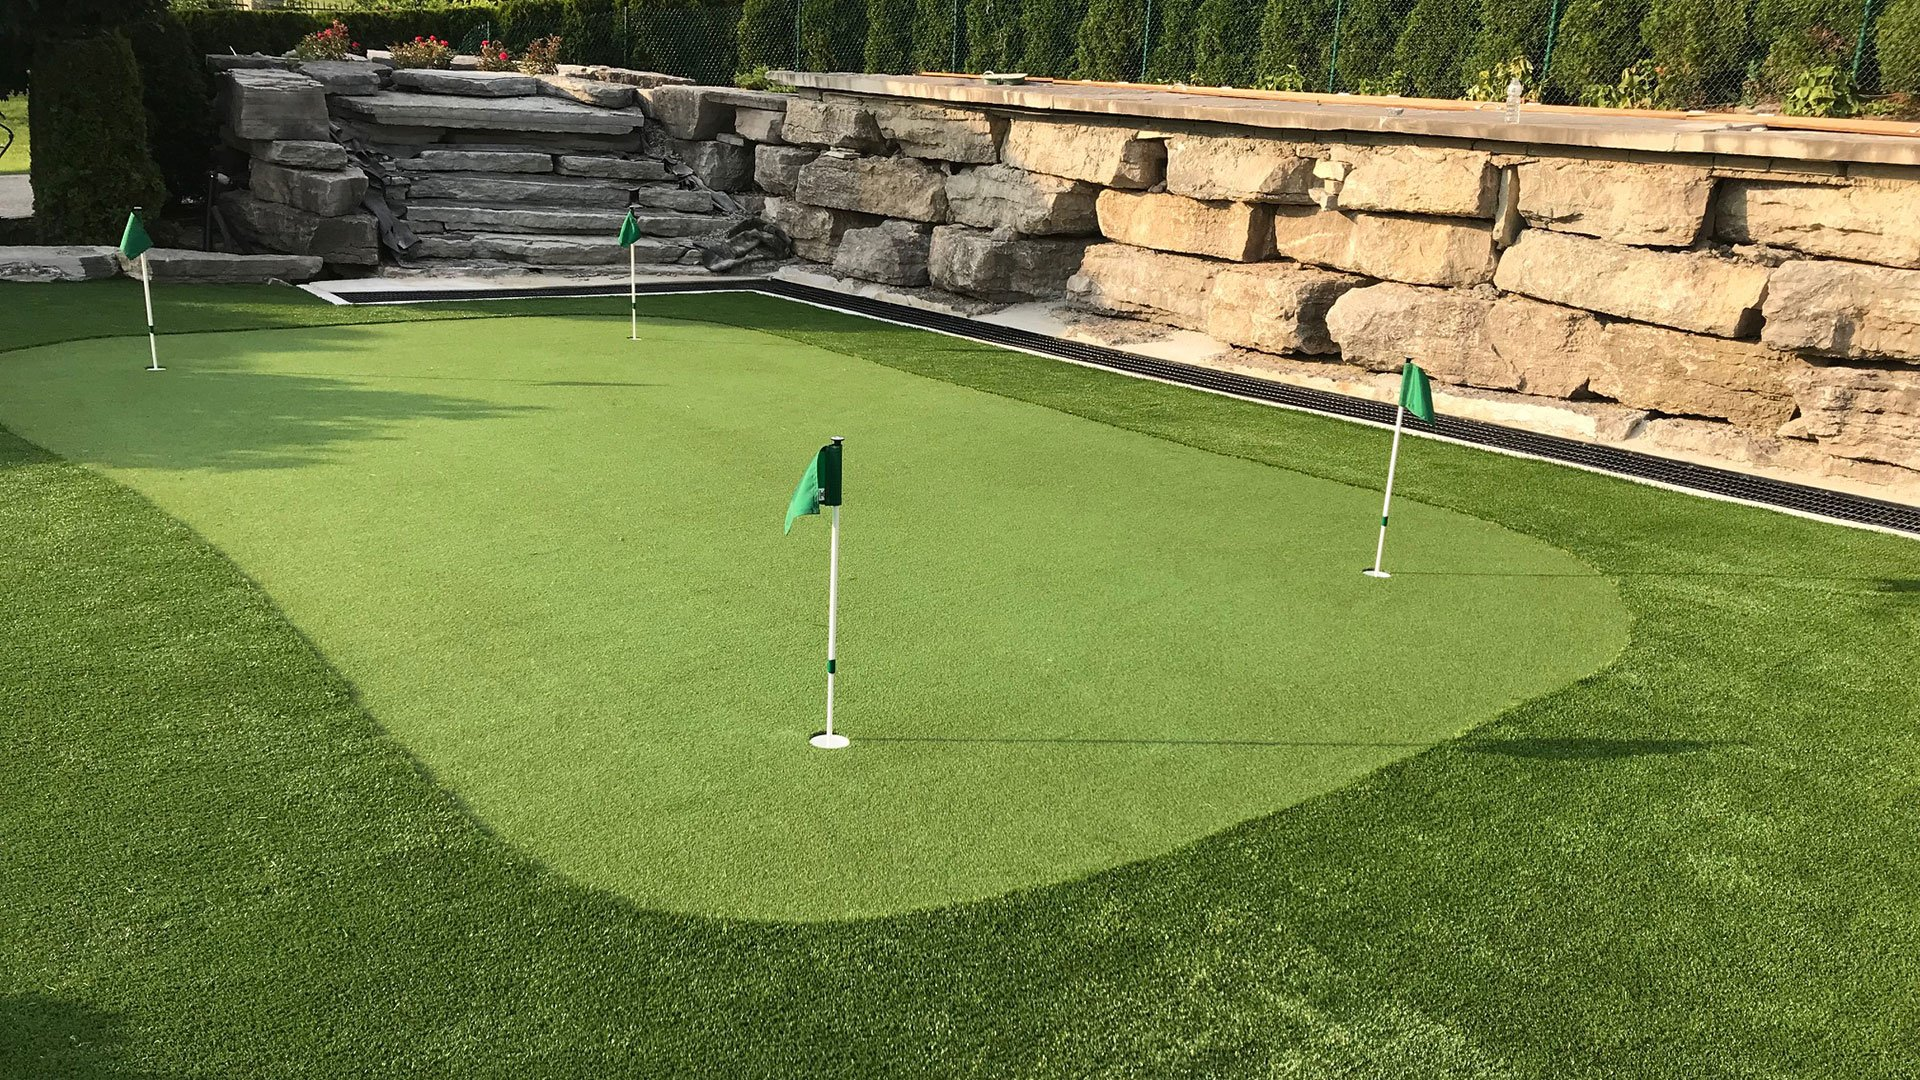 Artificial grass lawn & golf green